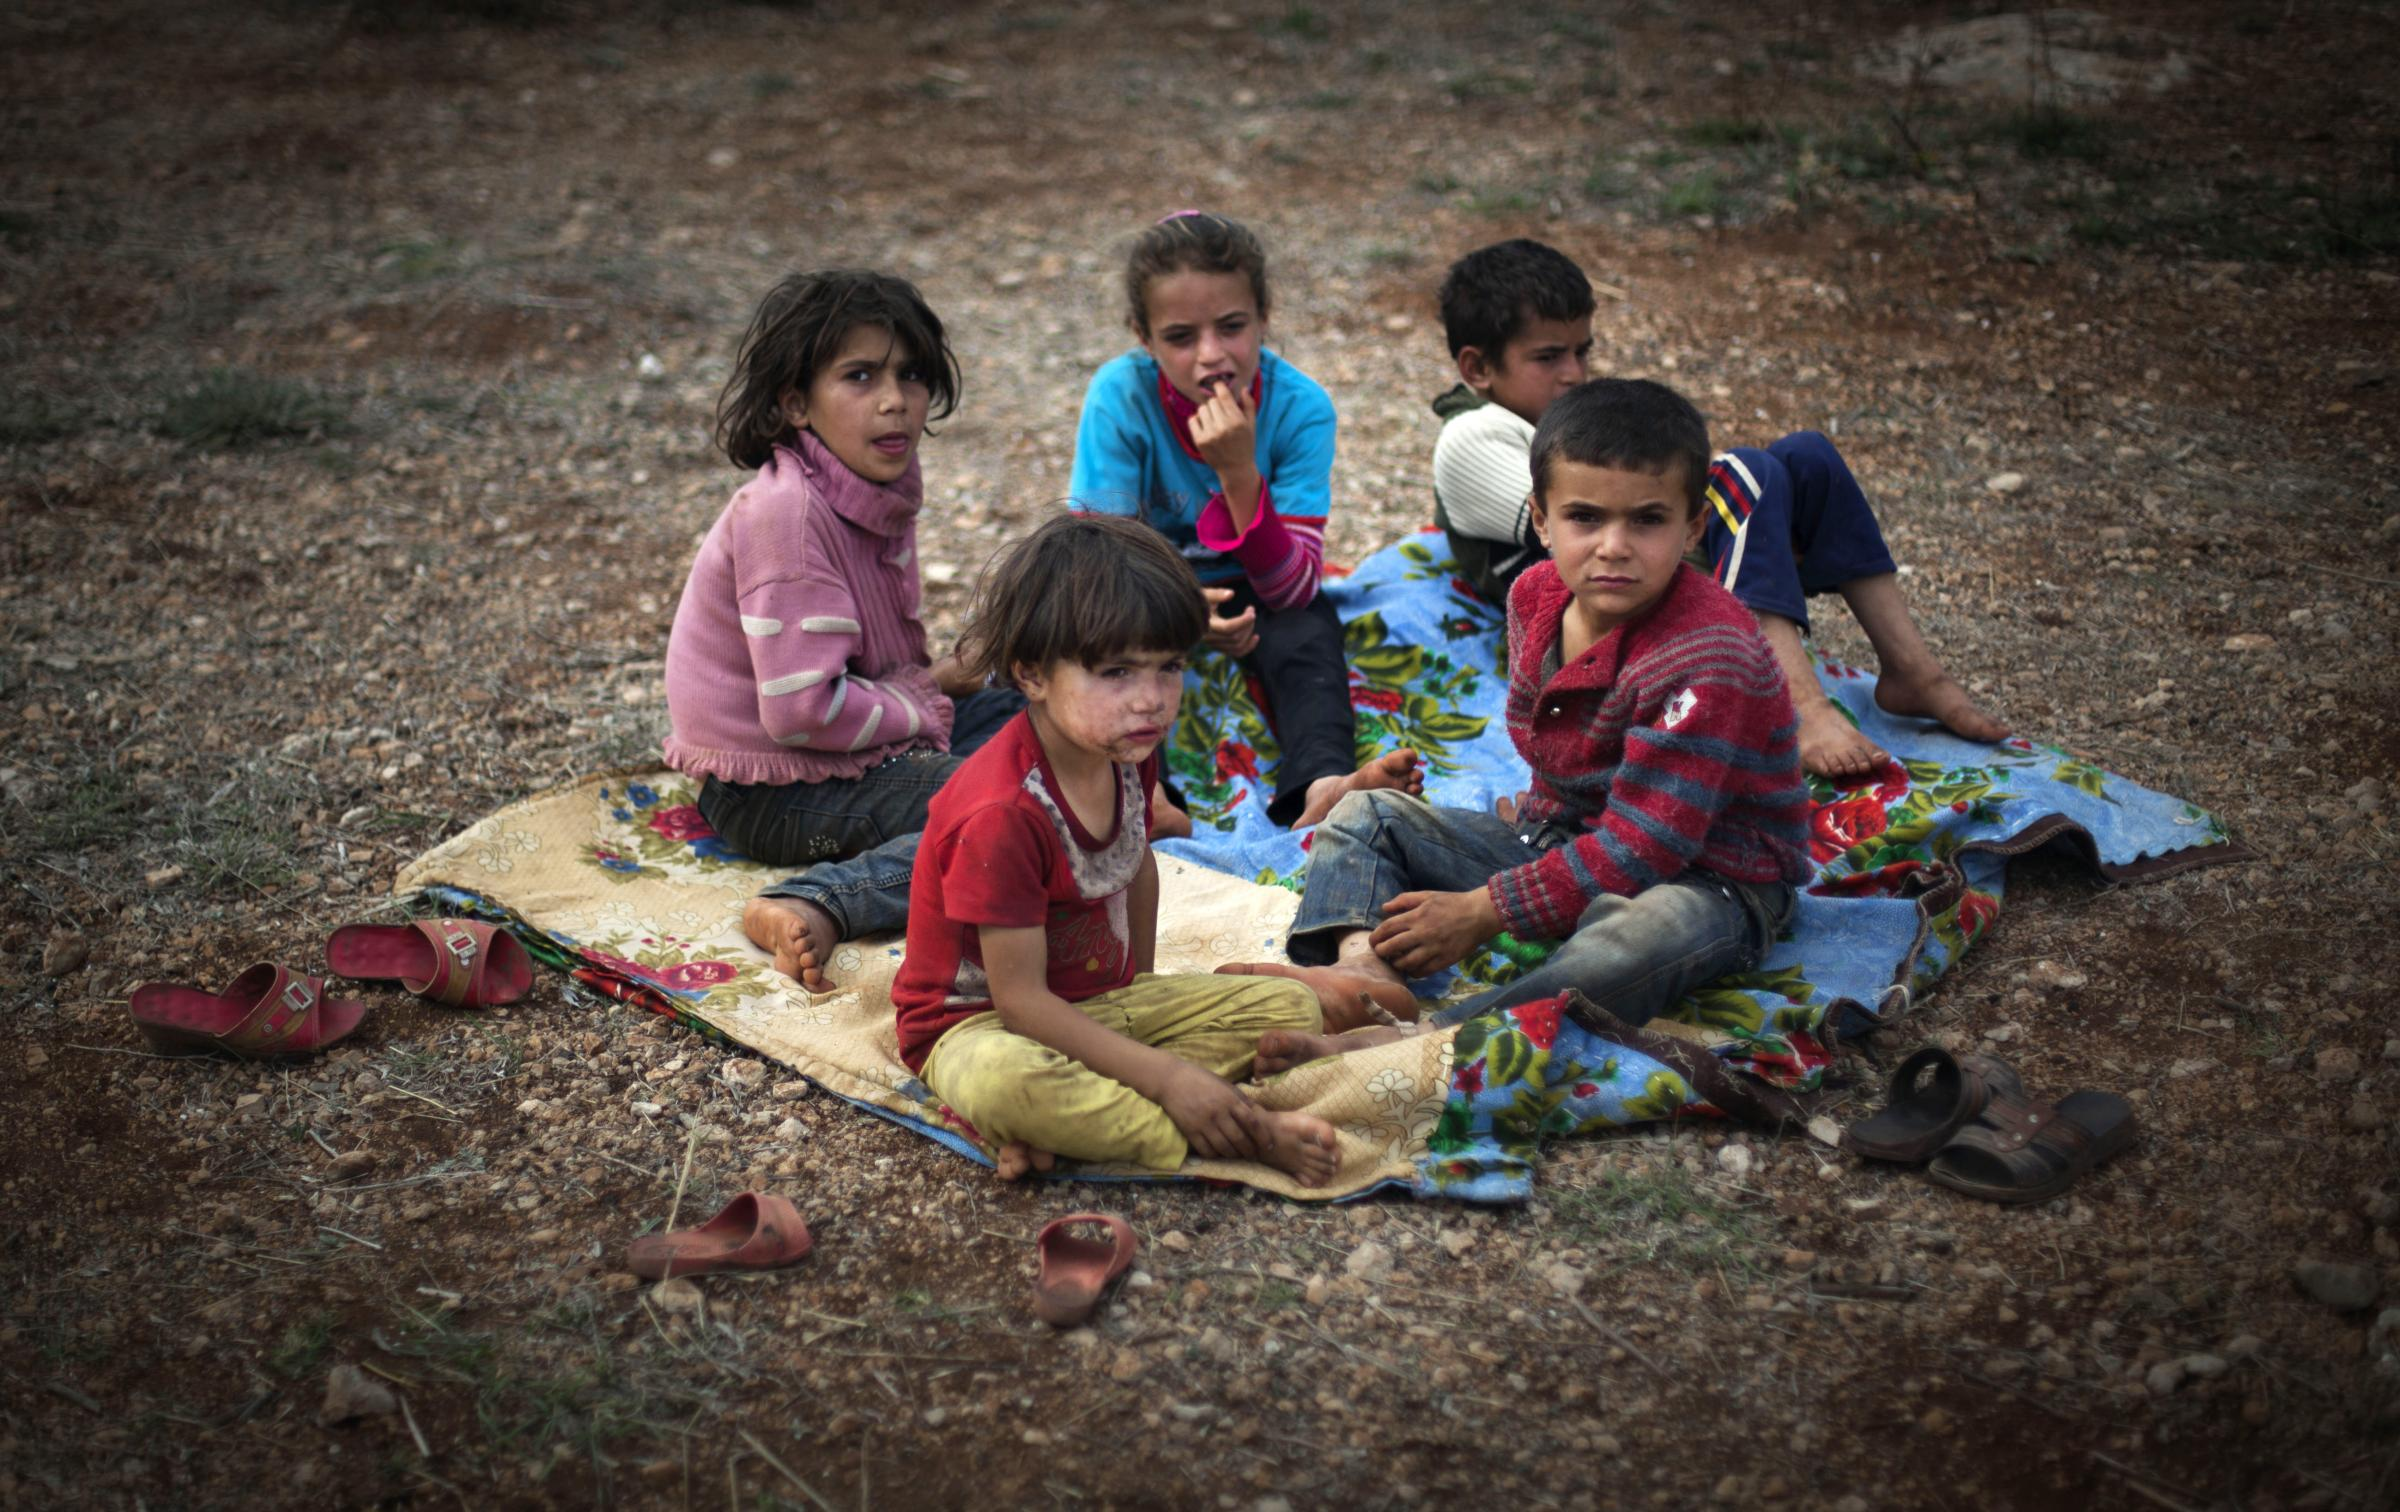 The Day the War Came – a poem about unaccompanied child refugees